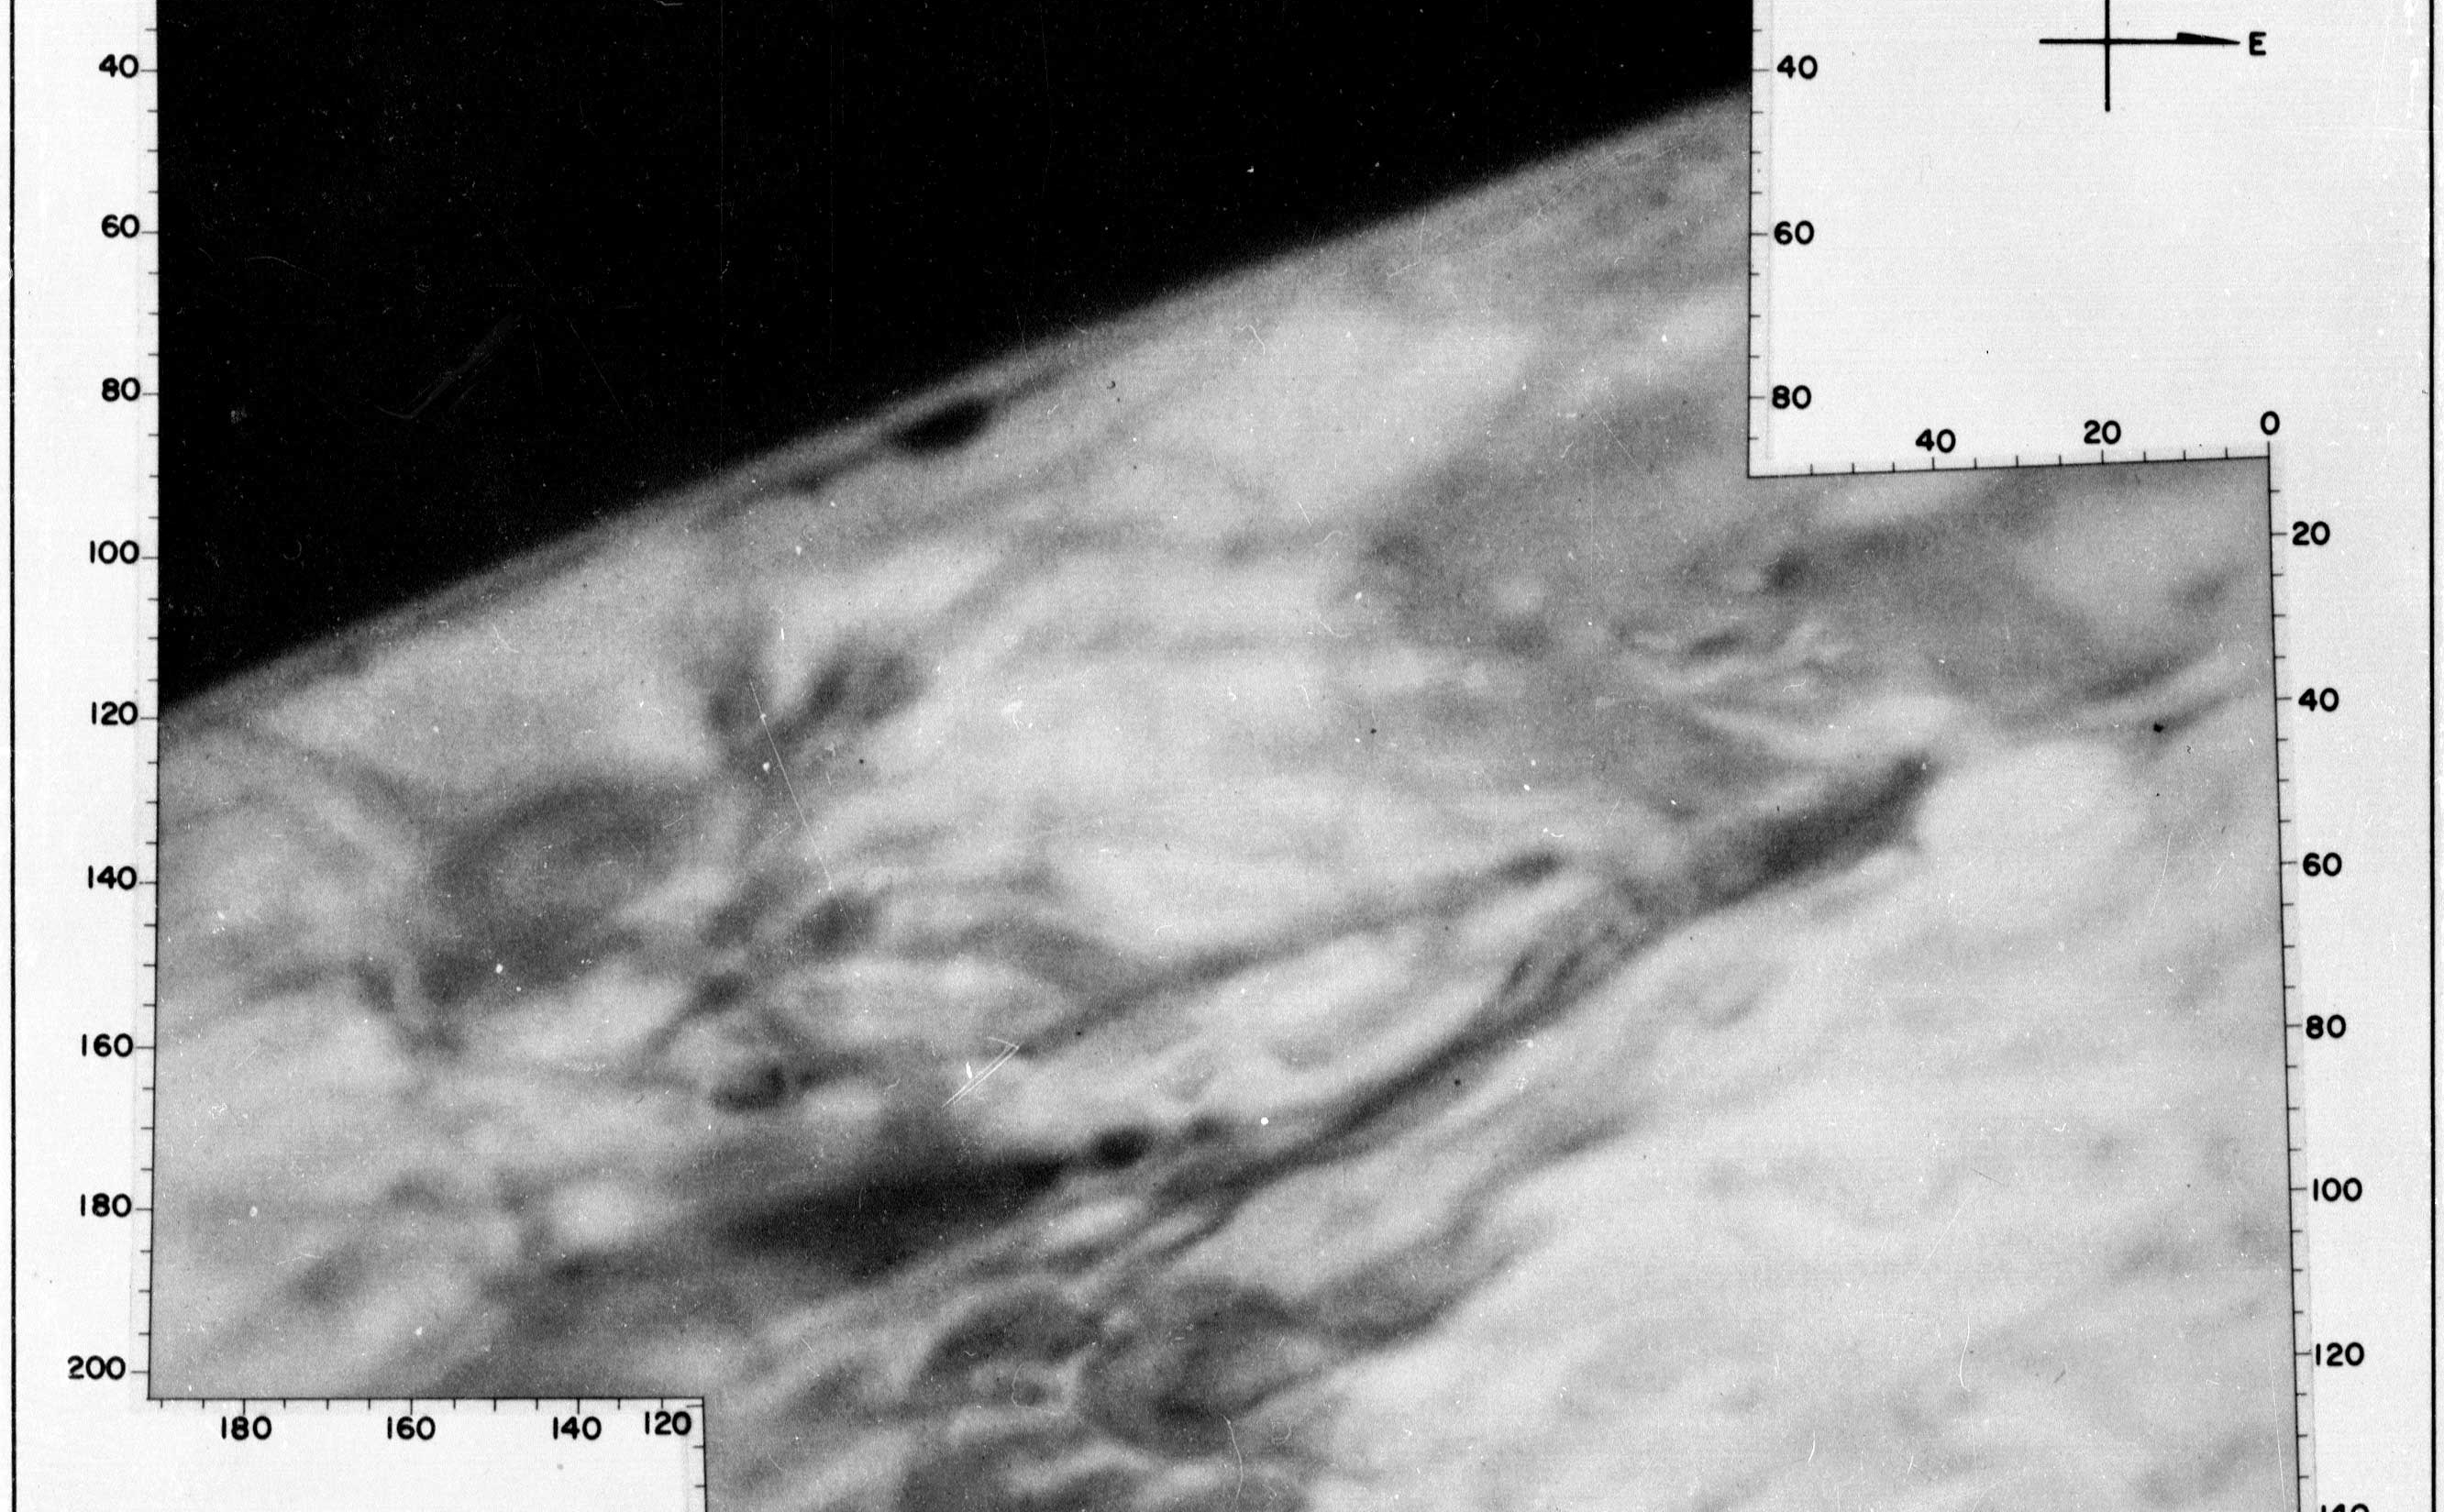 Orthographic shaded relief image using Mariner 4 frames 1